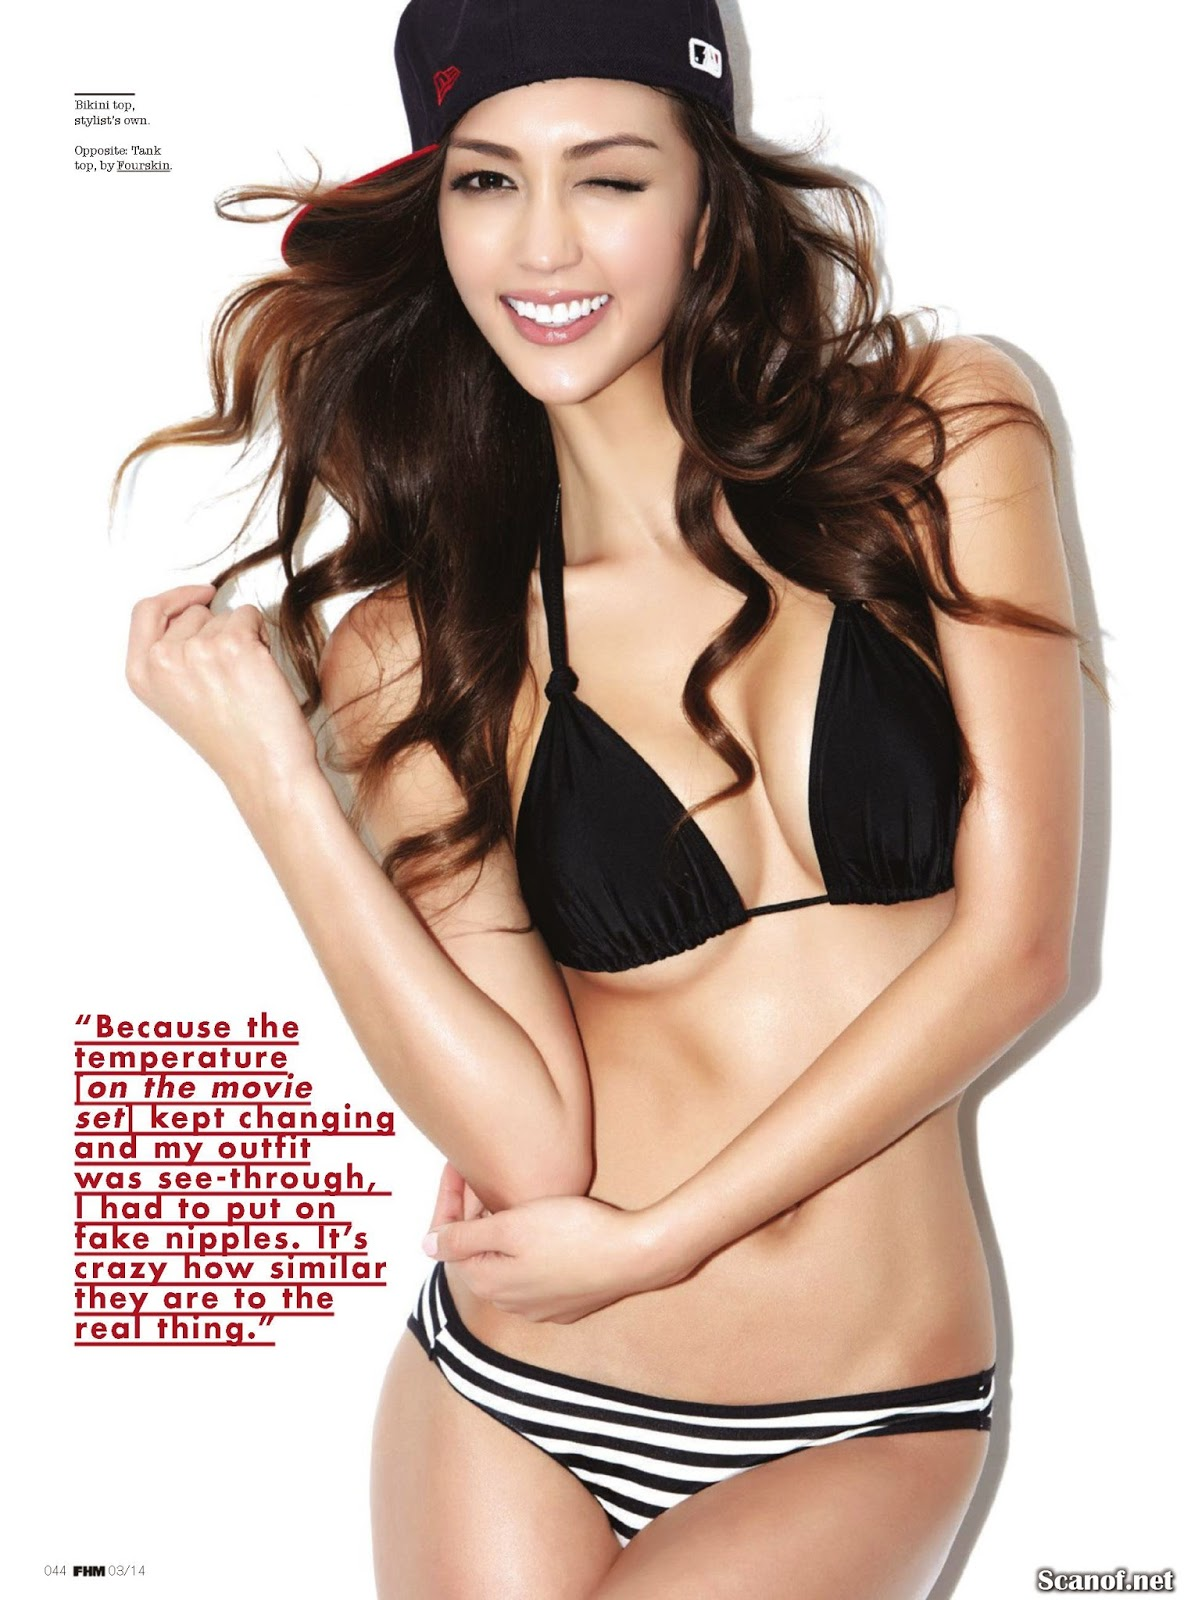 Jessica Cambensy for FHM Magazine Singapore, March 2014